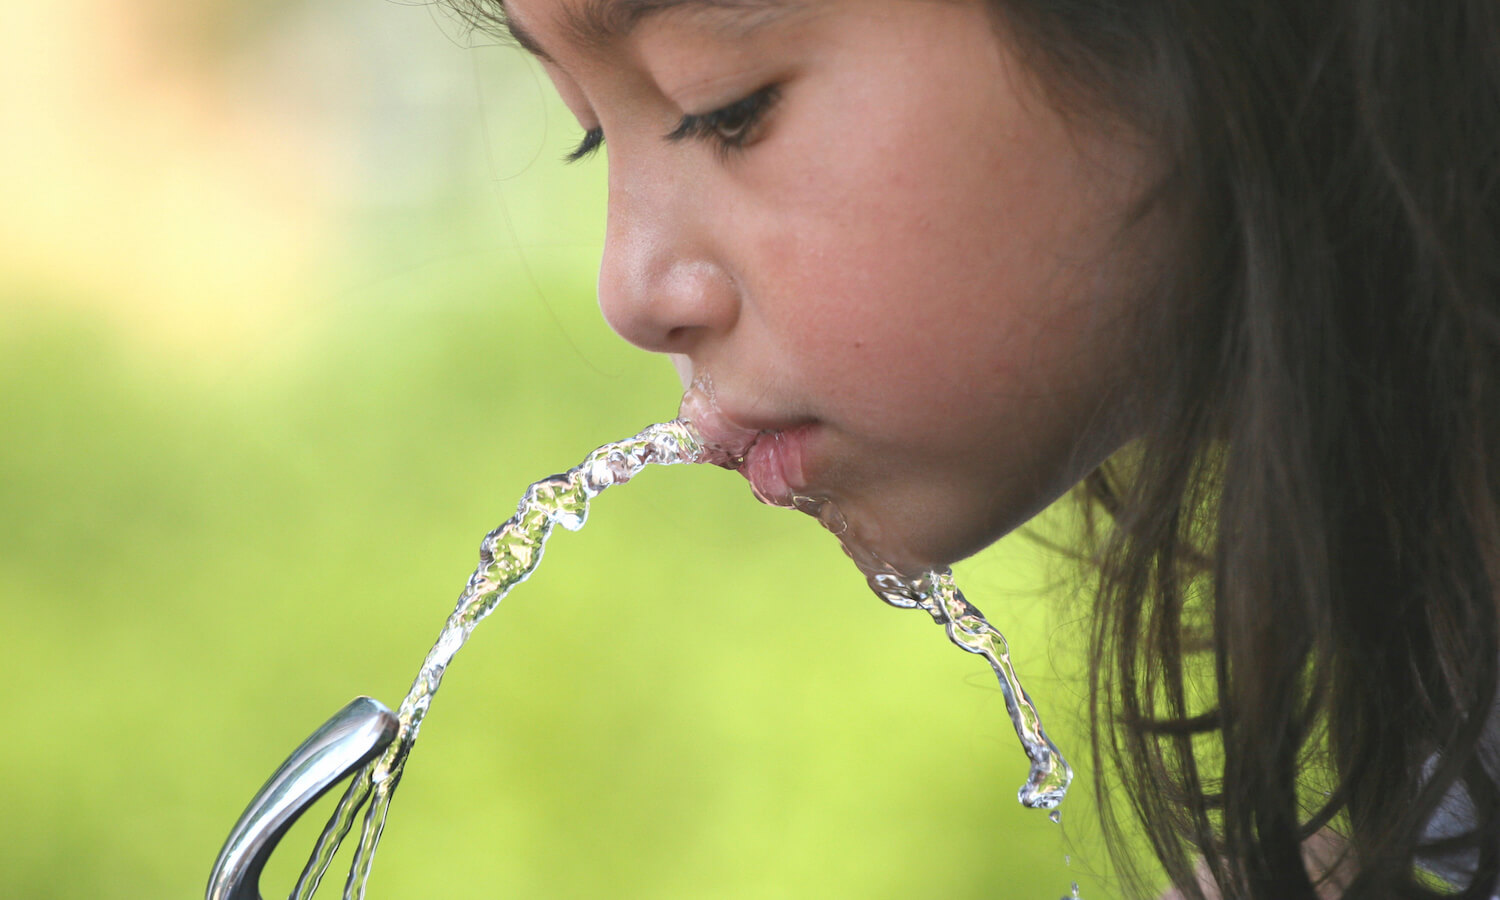 Girl drinking from a water fountain